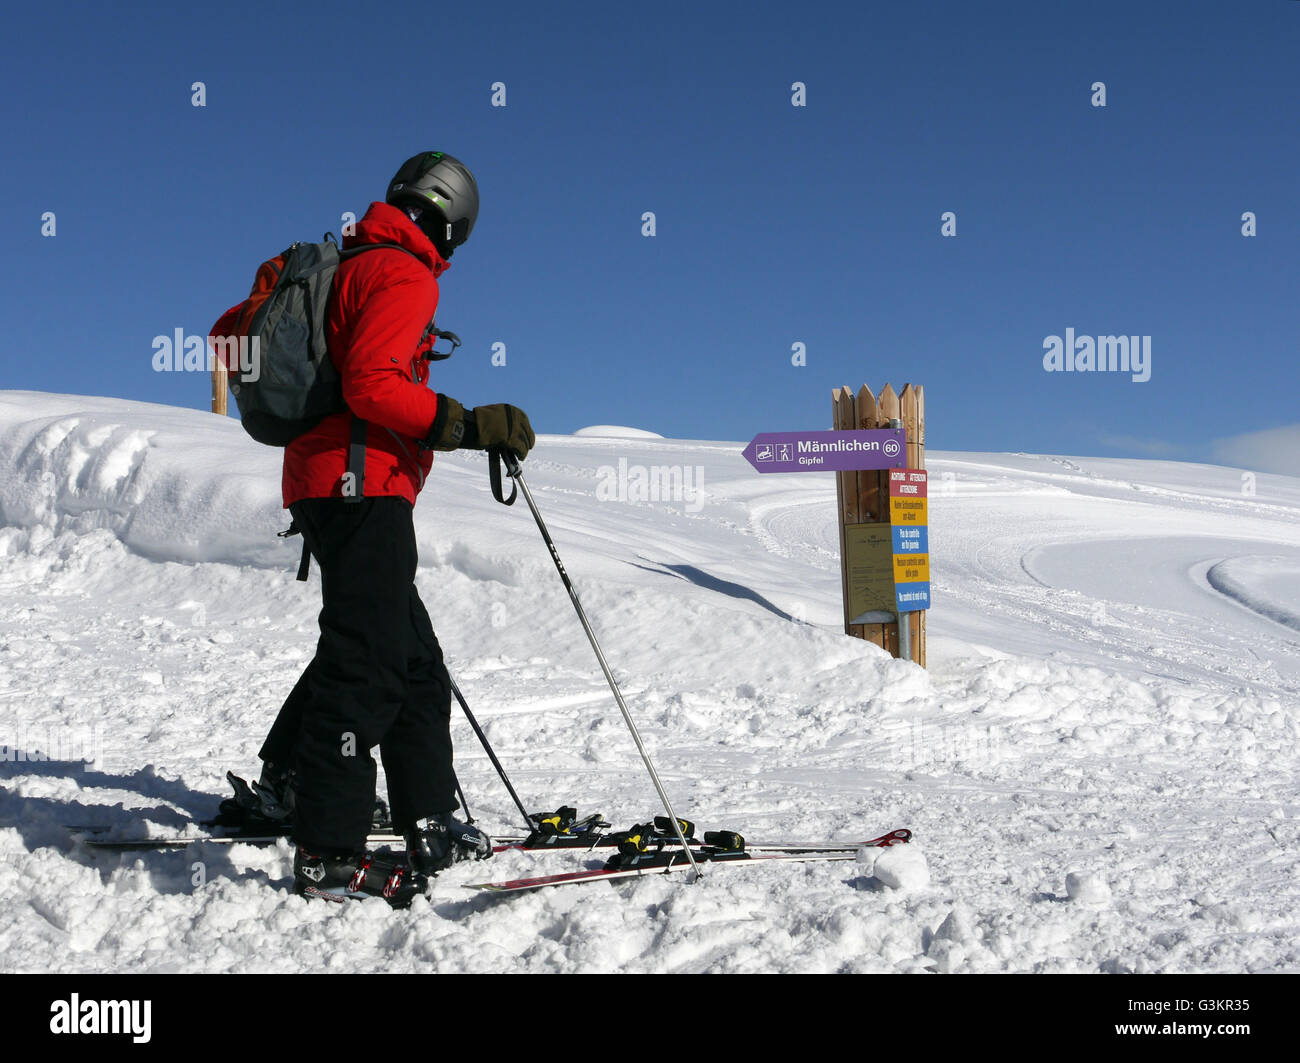 Putting on their skis to descend from the Mannlichen to Grindlewald - Stock Image